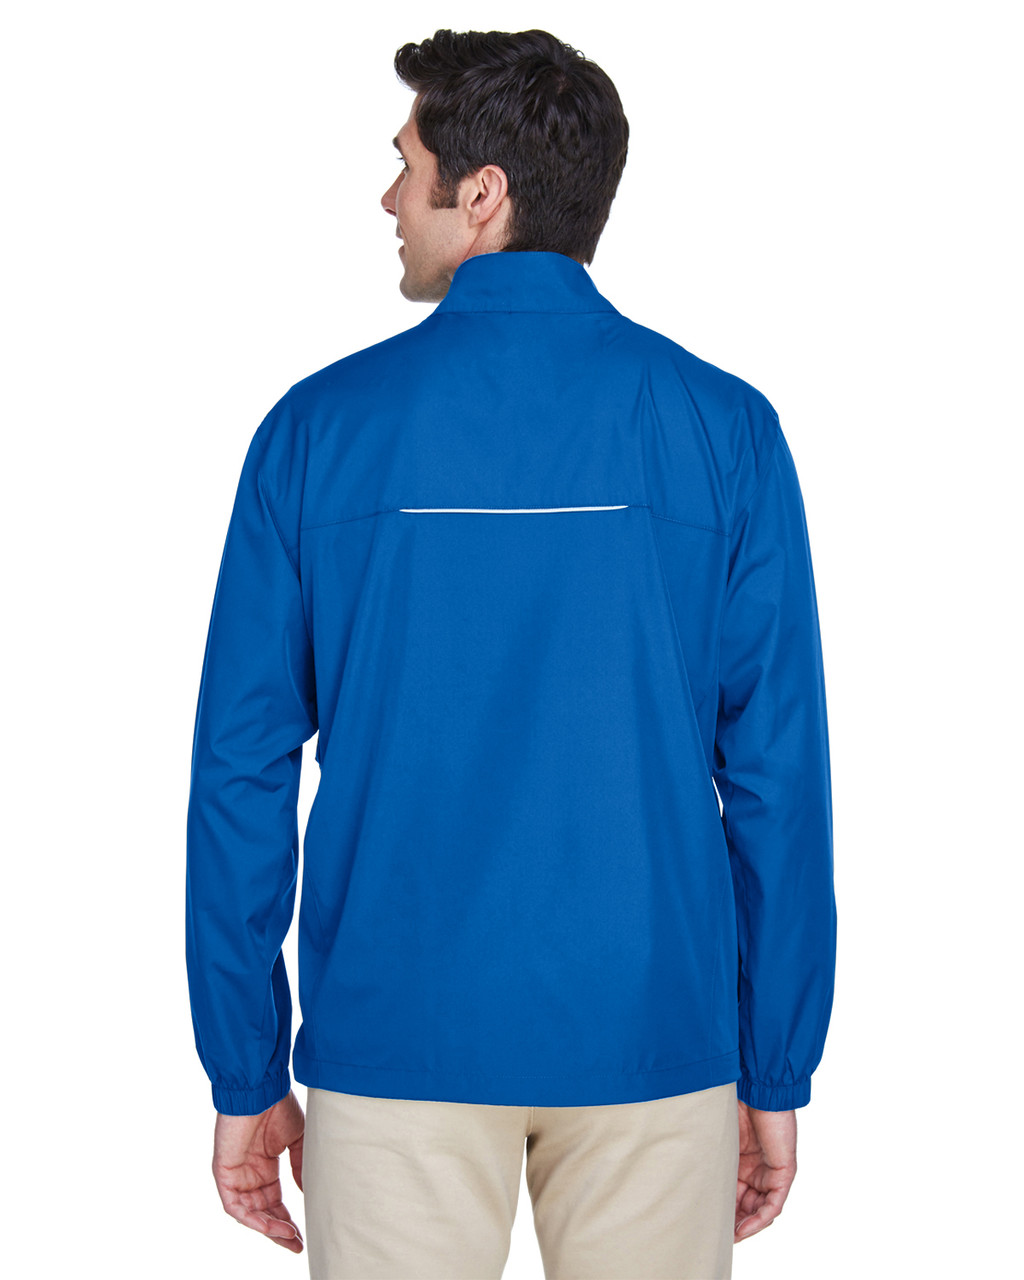 True Royal - Back, 88183T Ash City - Core 365 Tall Motivate Unlined Lightweight Jacket | Blankclothing.ca